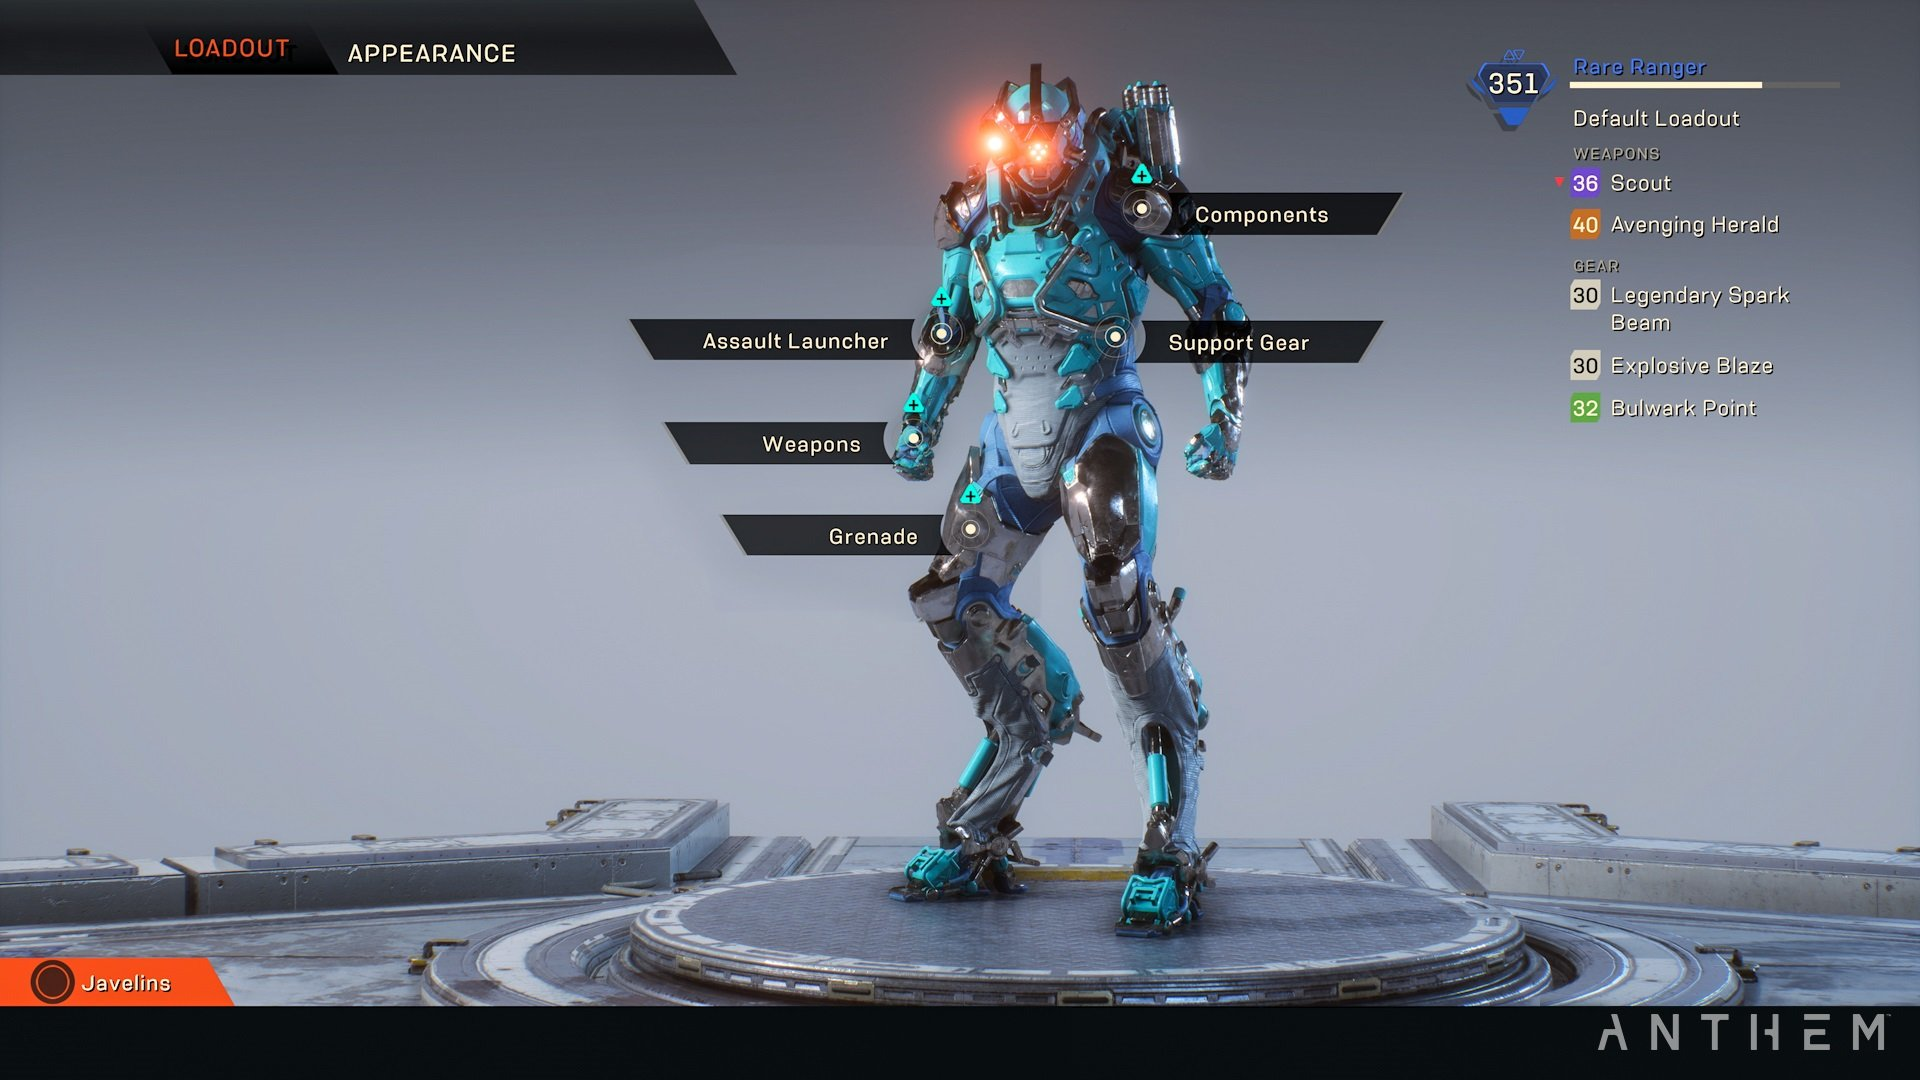 Anthem hands-on preview - Customization